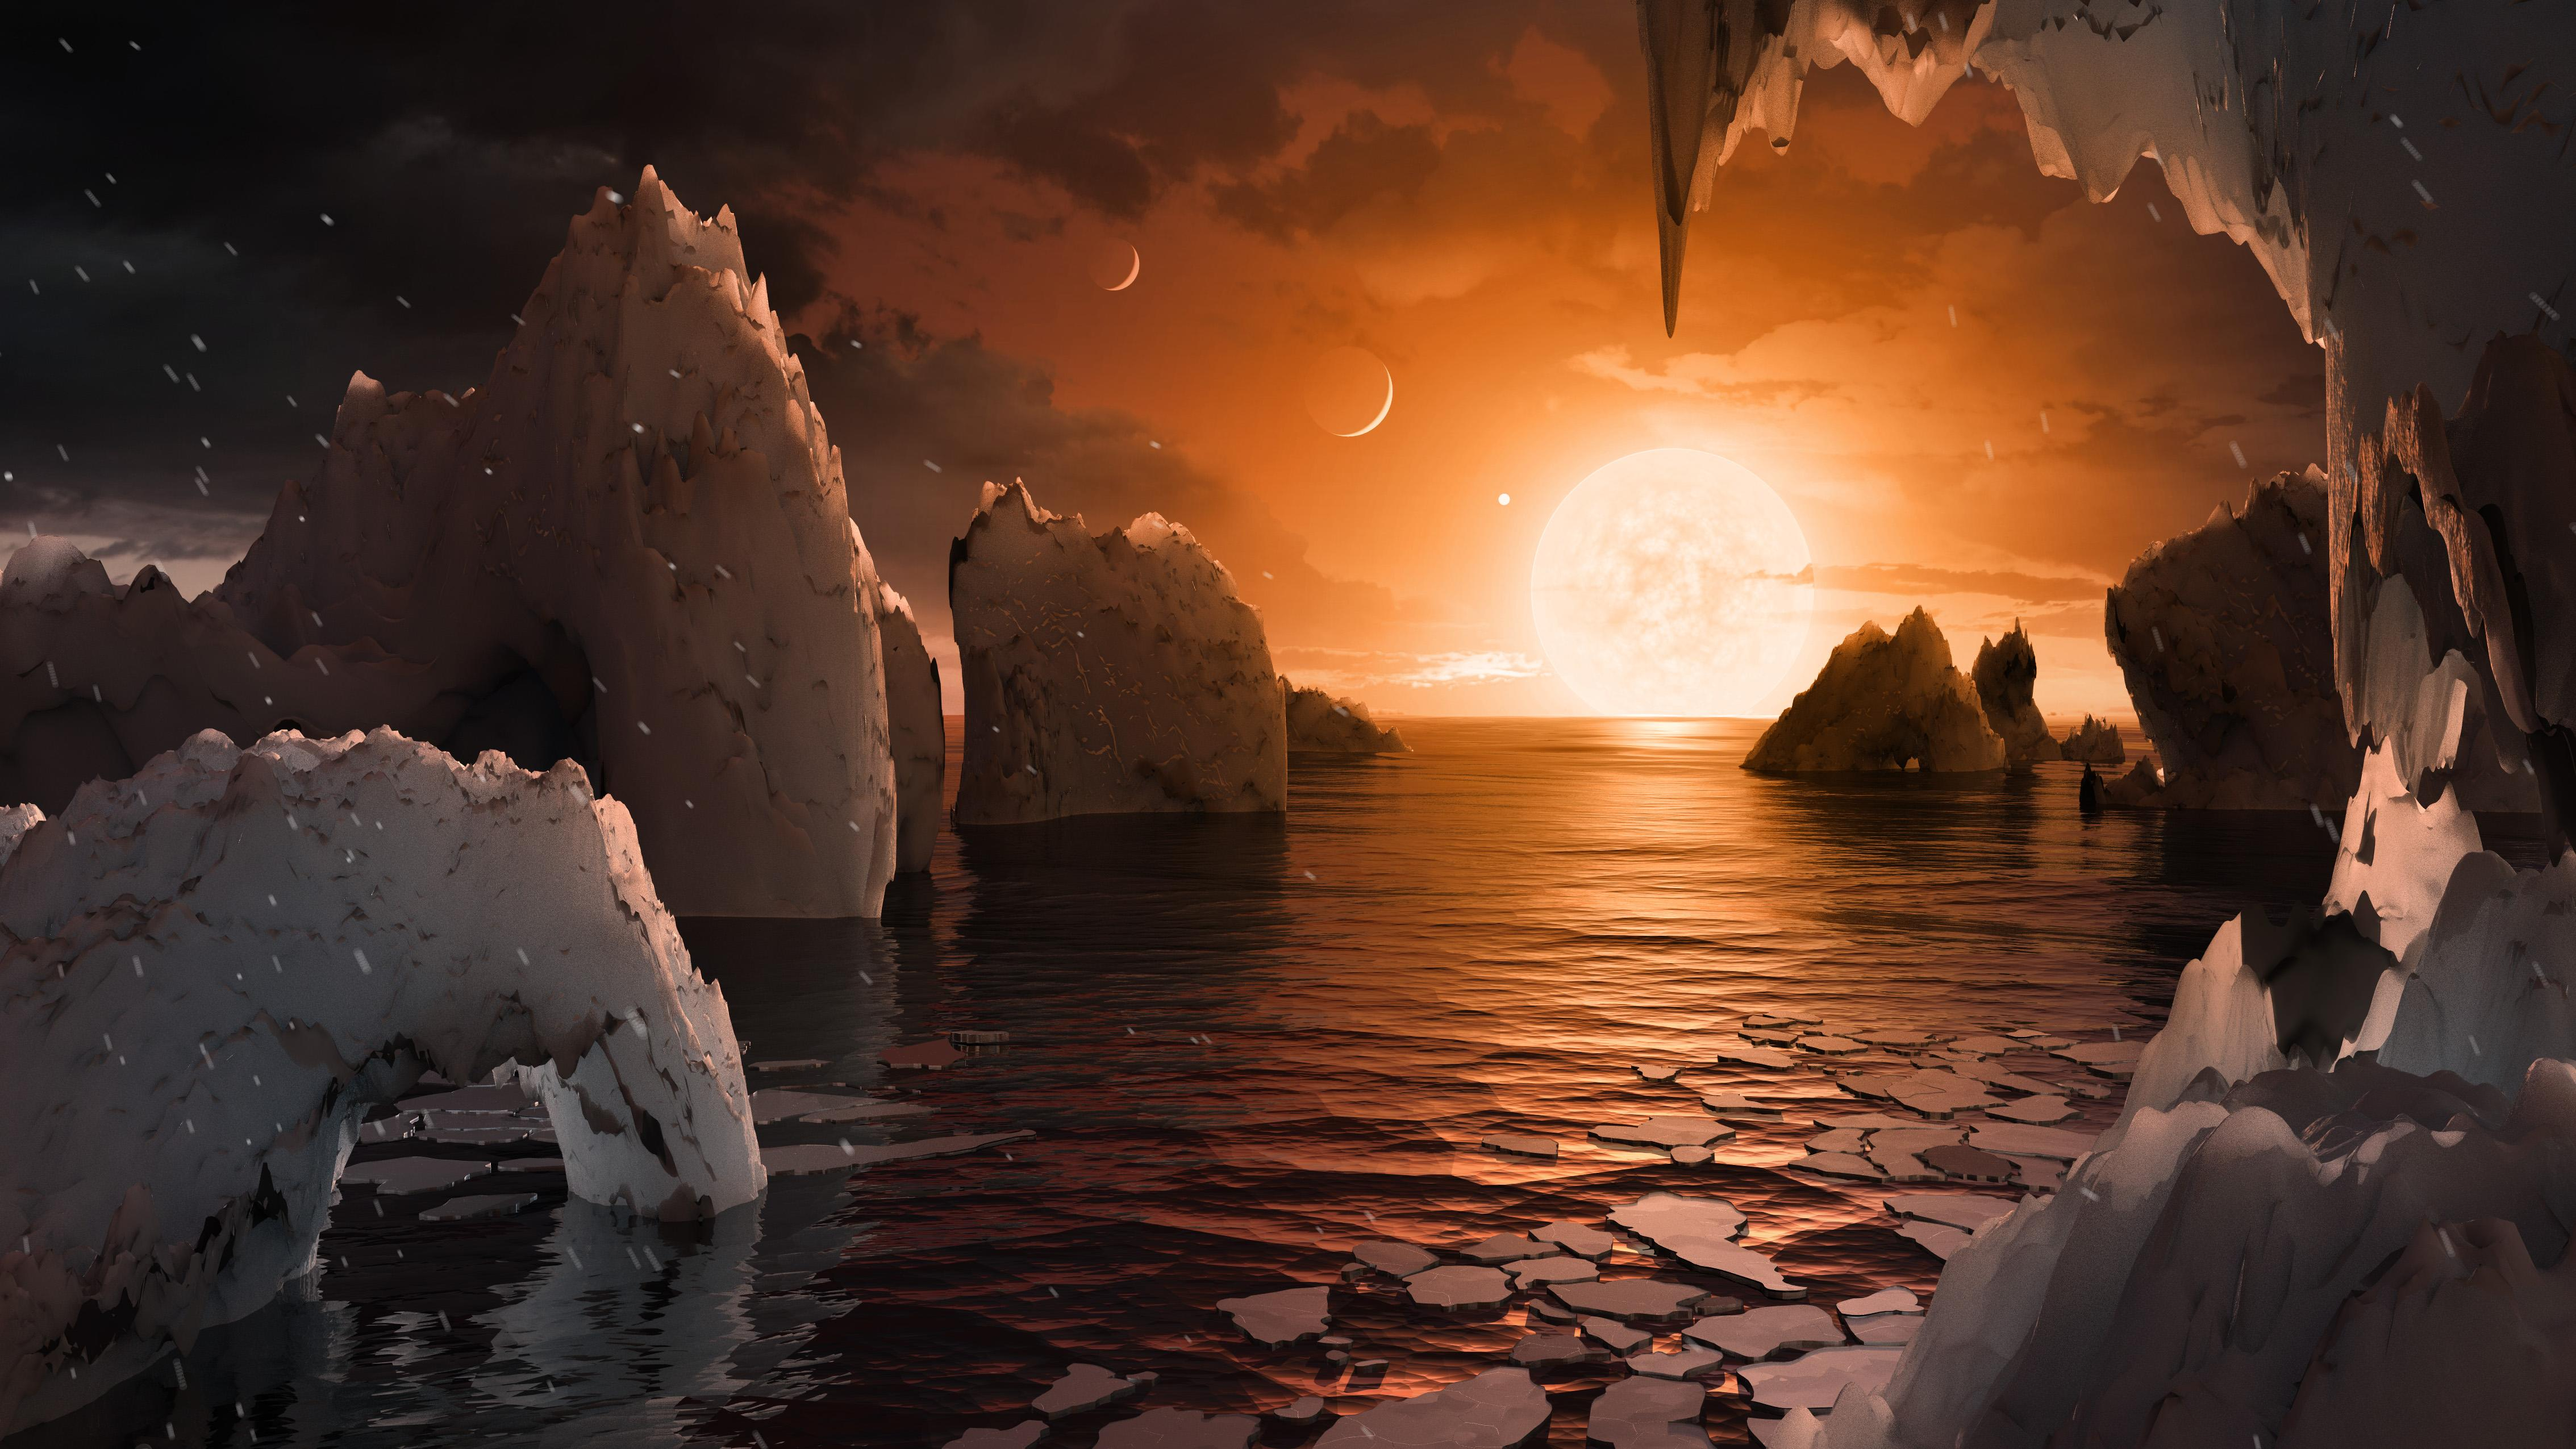 Extraterrestrial life 'could be much, much rarer than we thought', new study suggests